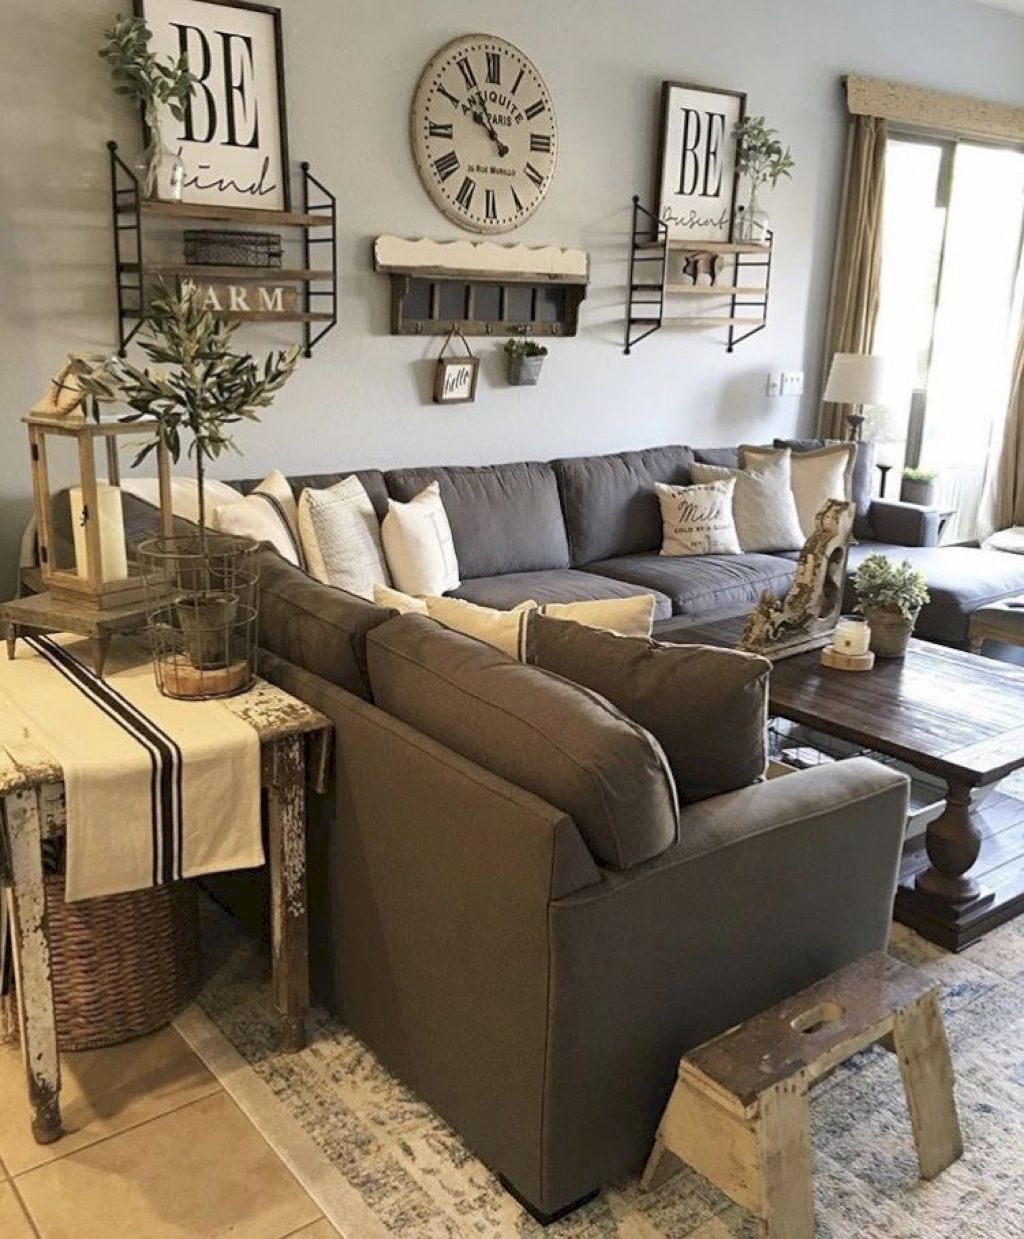 Adorable 35 Best Modern Farmhouse Living Room Decor Ideas Https Homeylife